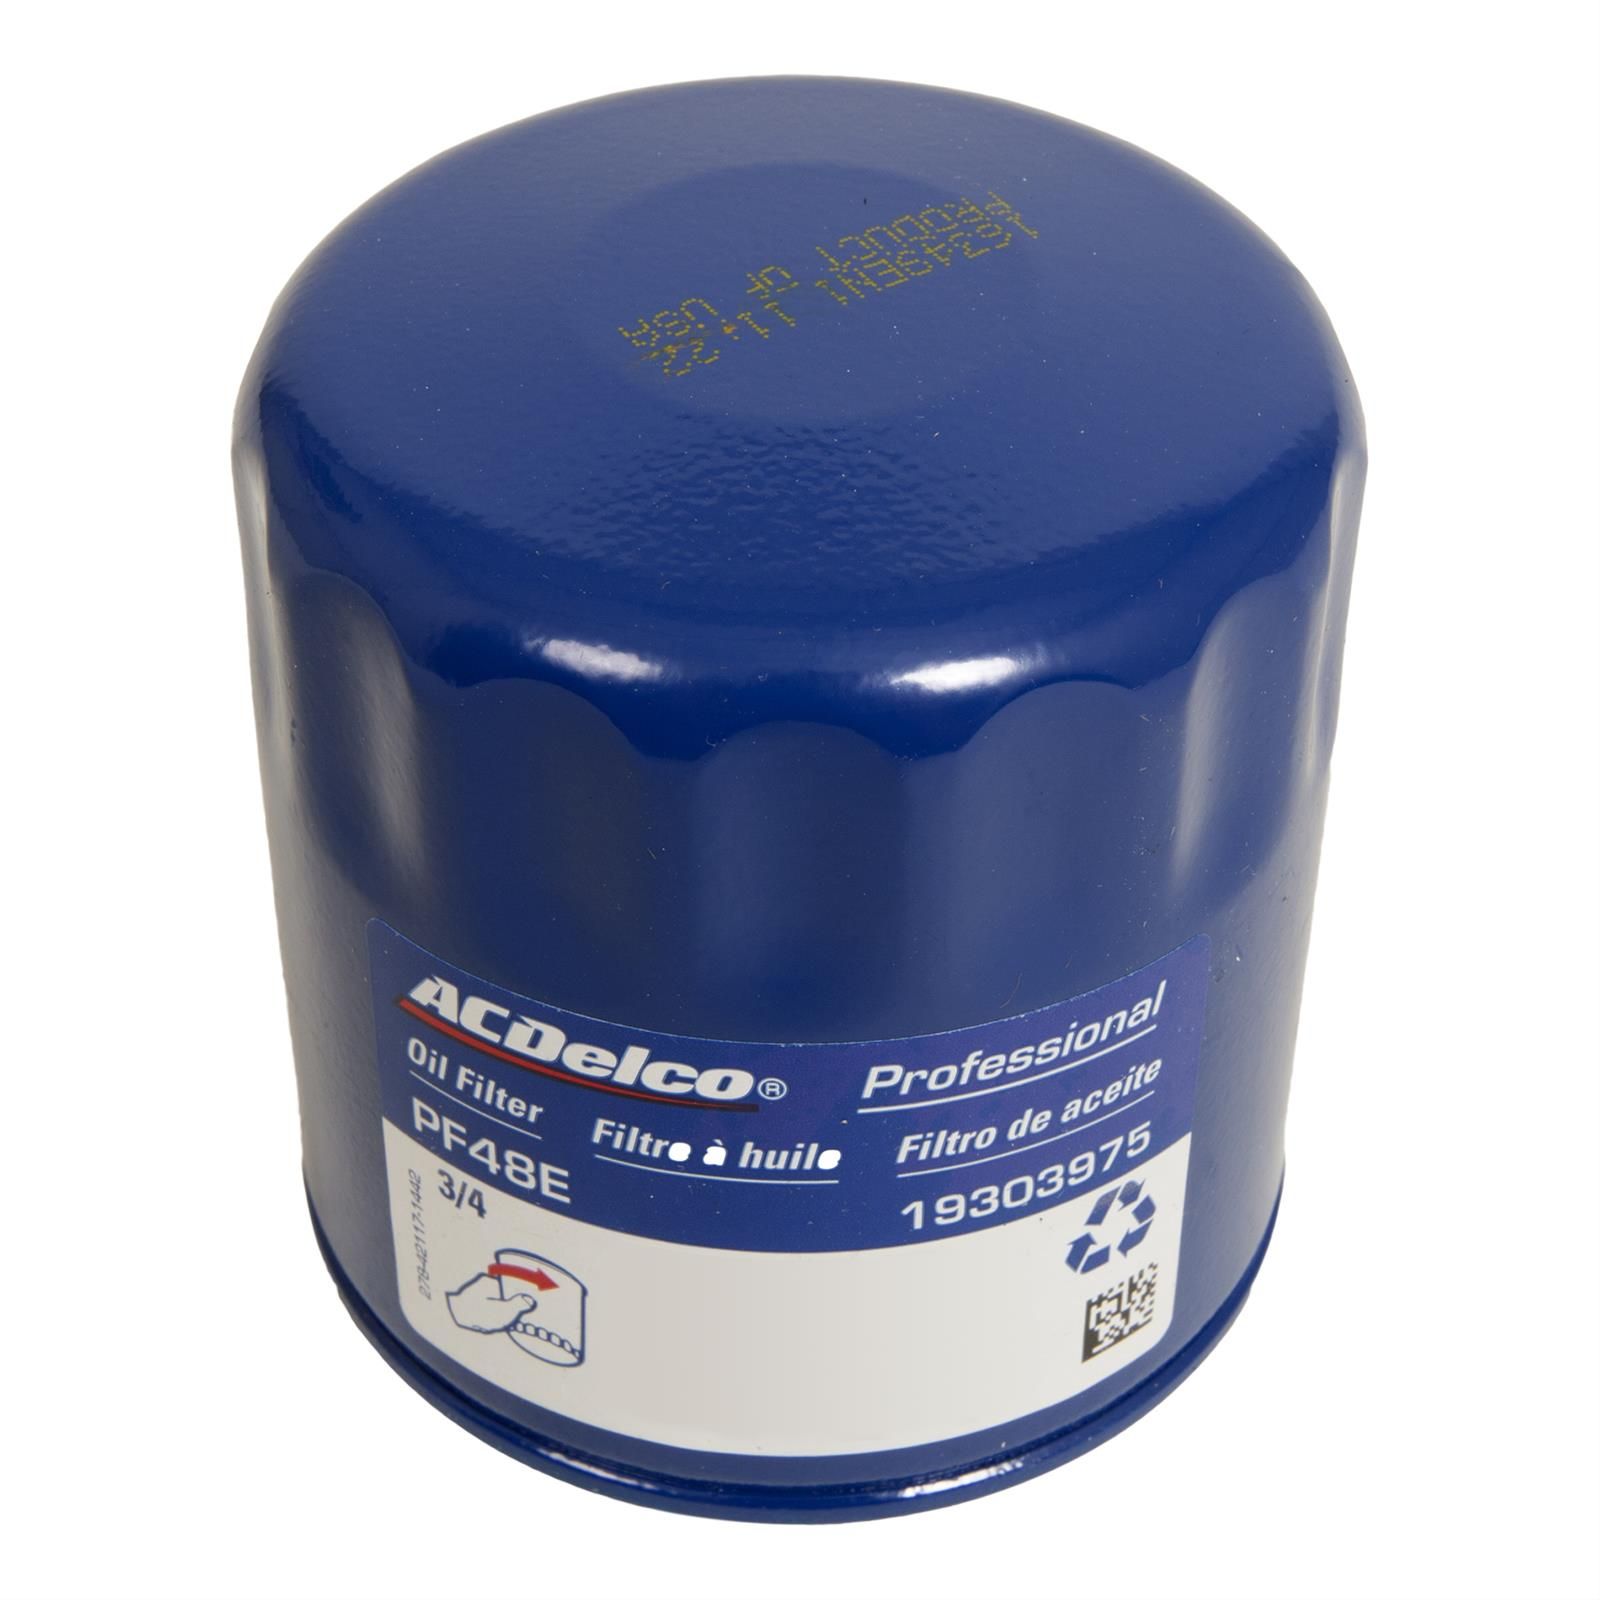 AC DELCO Oil Filter PF48/ PF48E OE Preferred Supplier